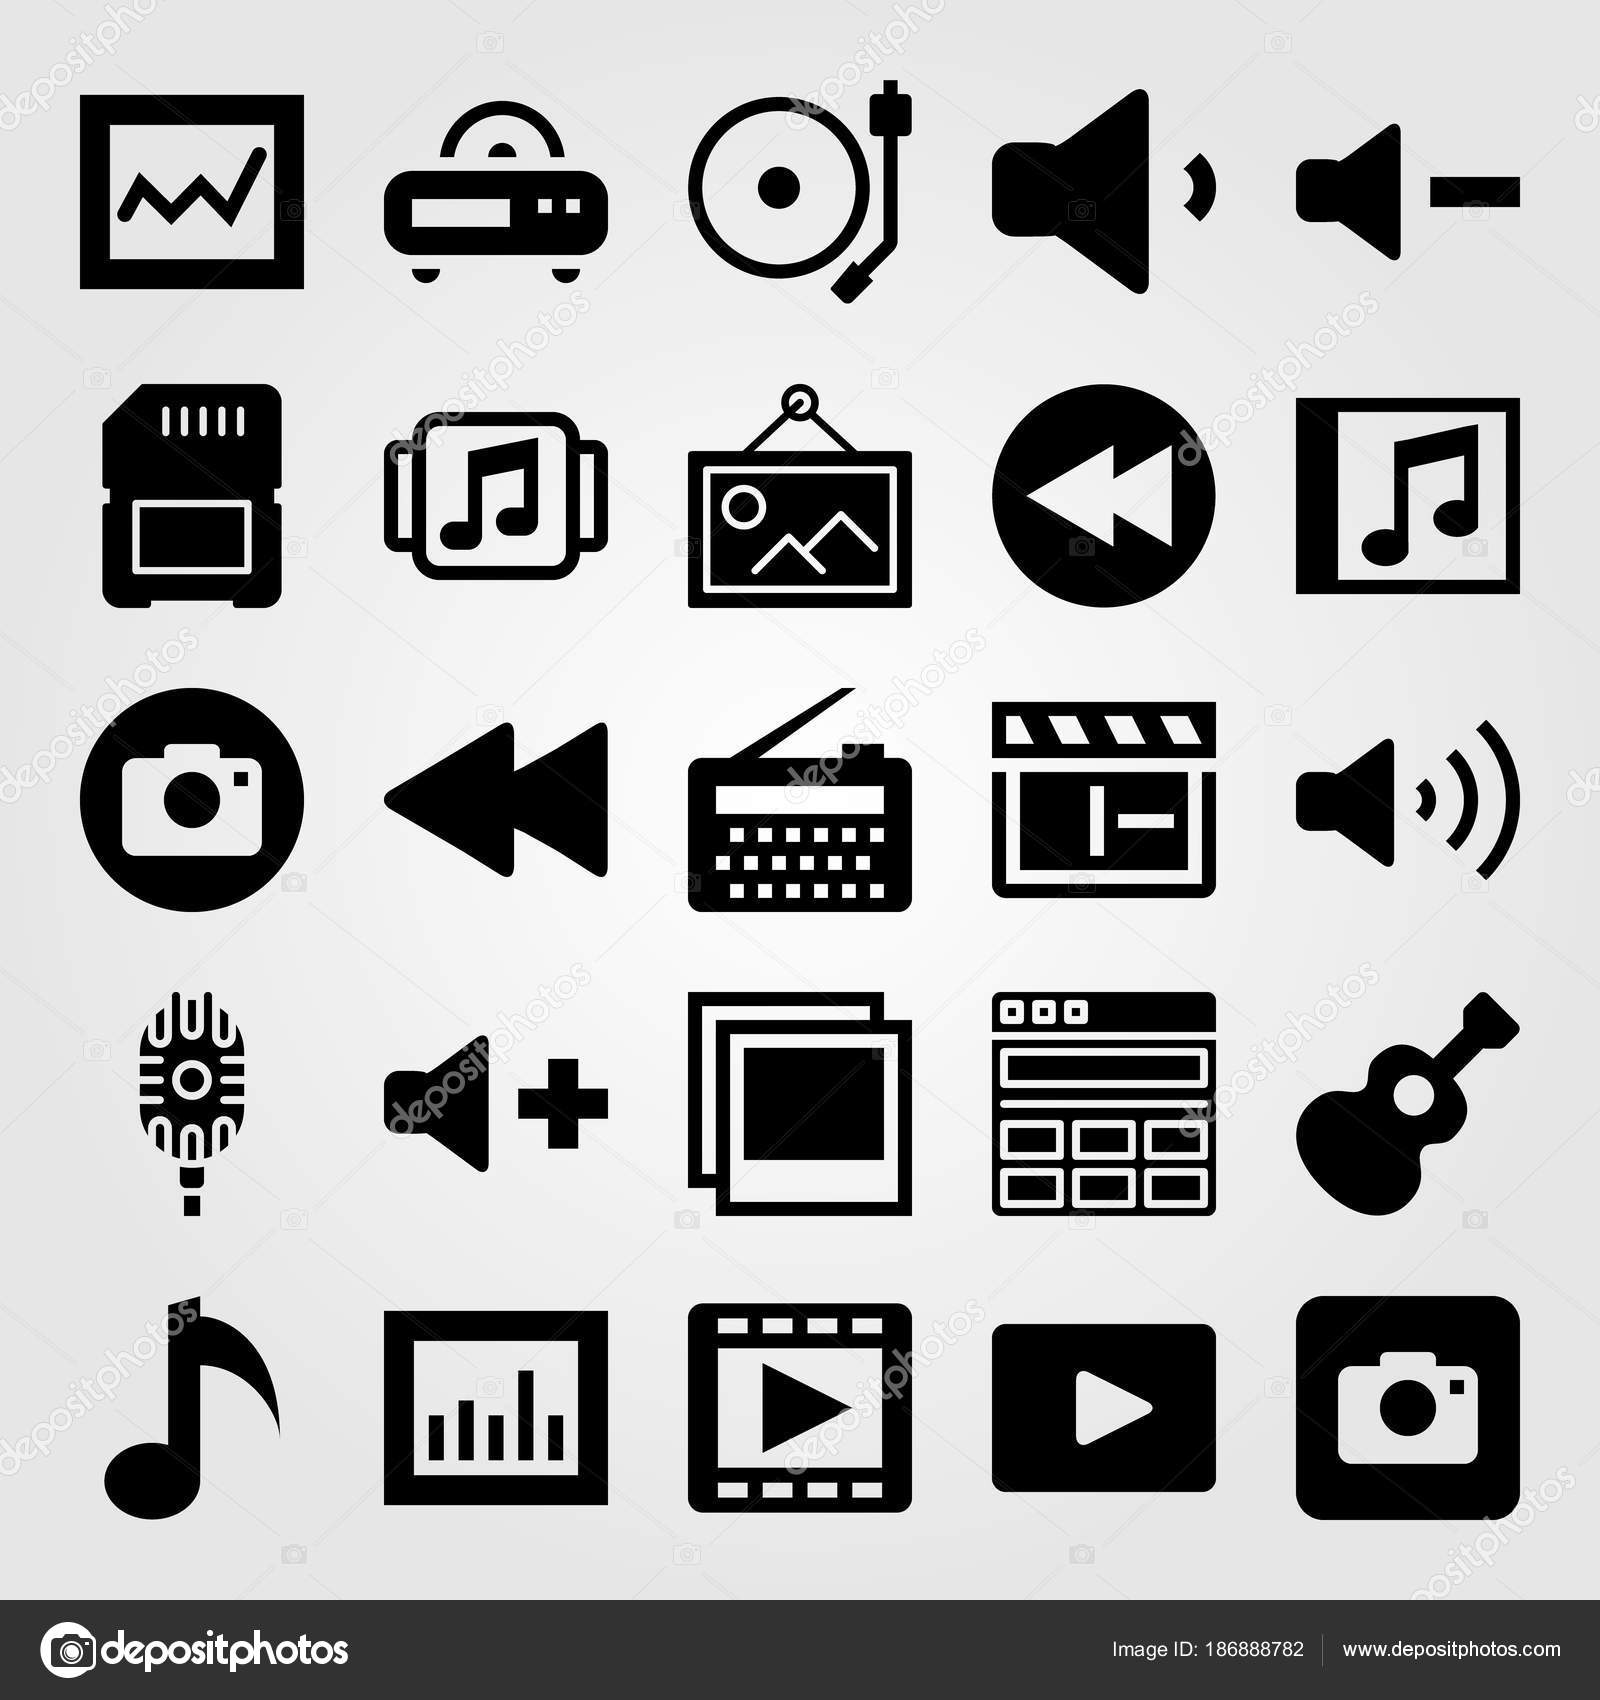 Multimedia icon set vector  musical note, music player, analytics